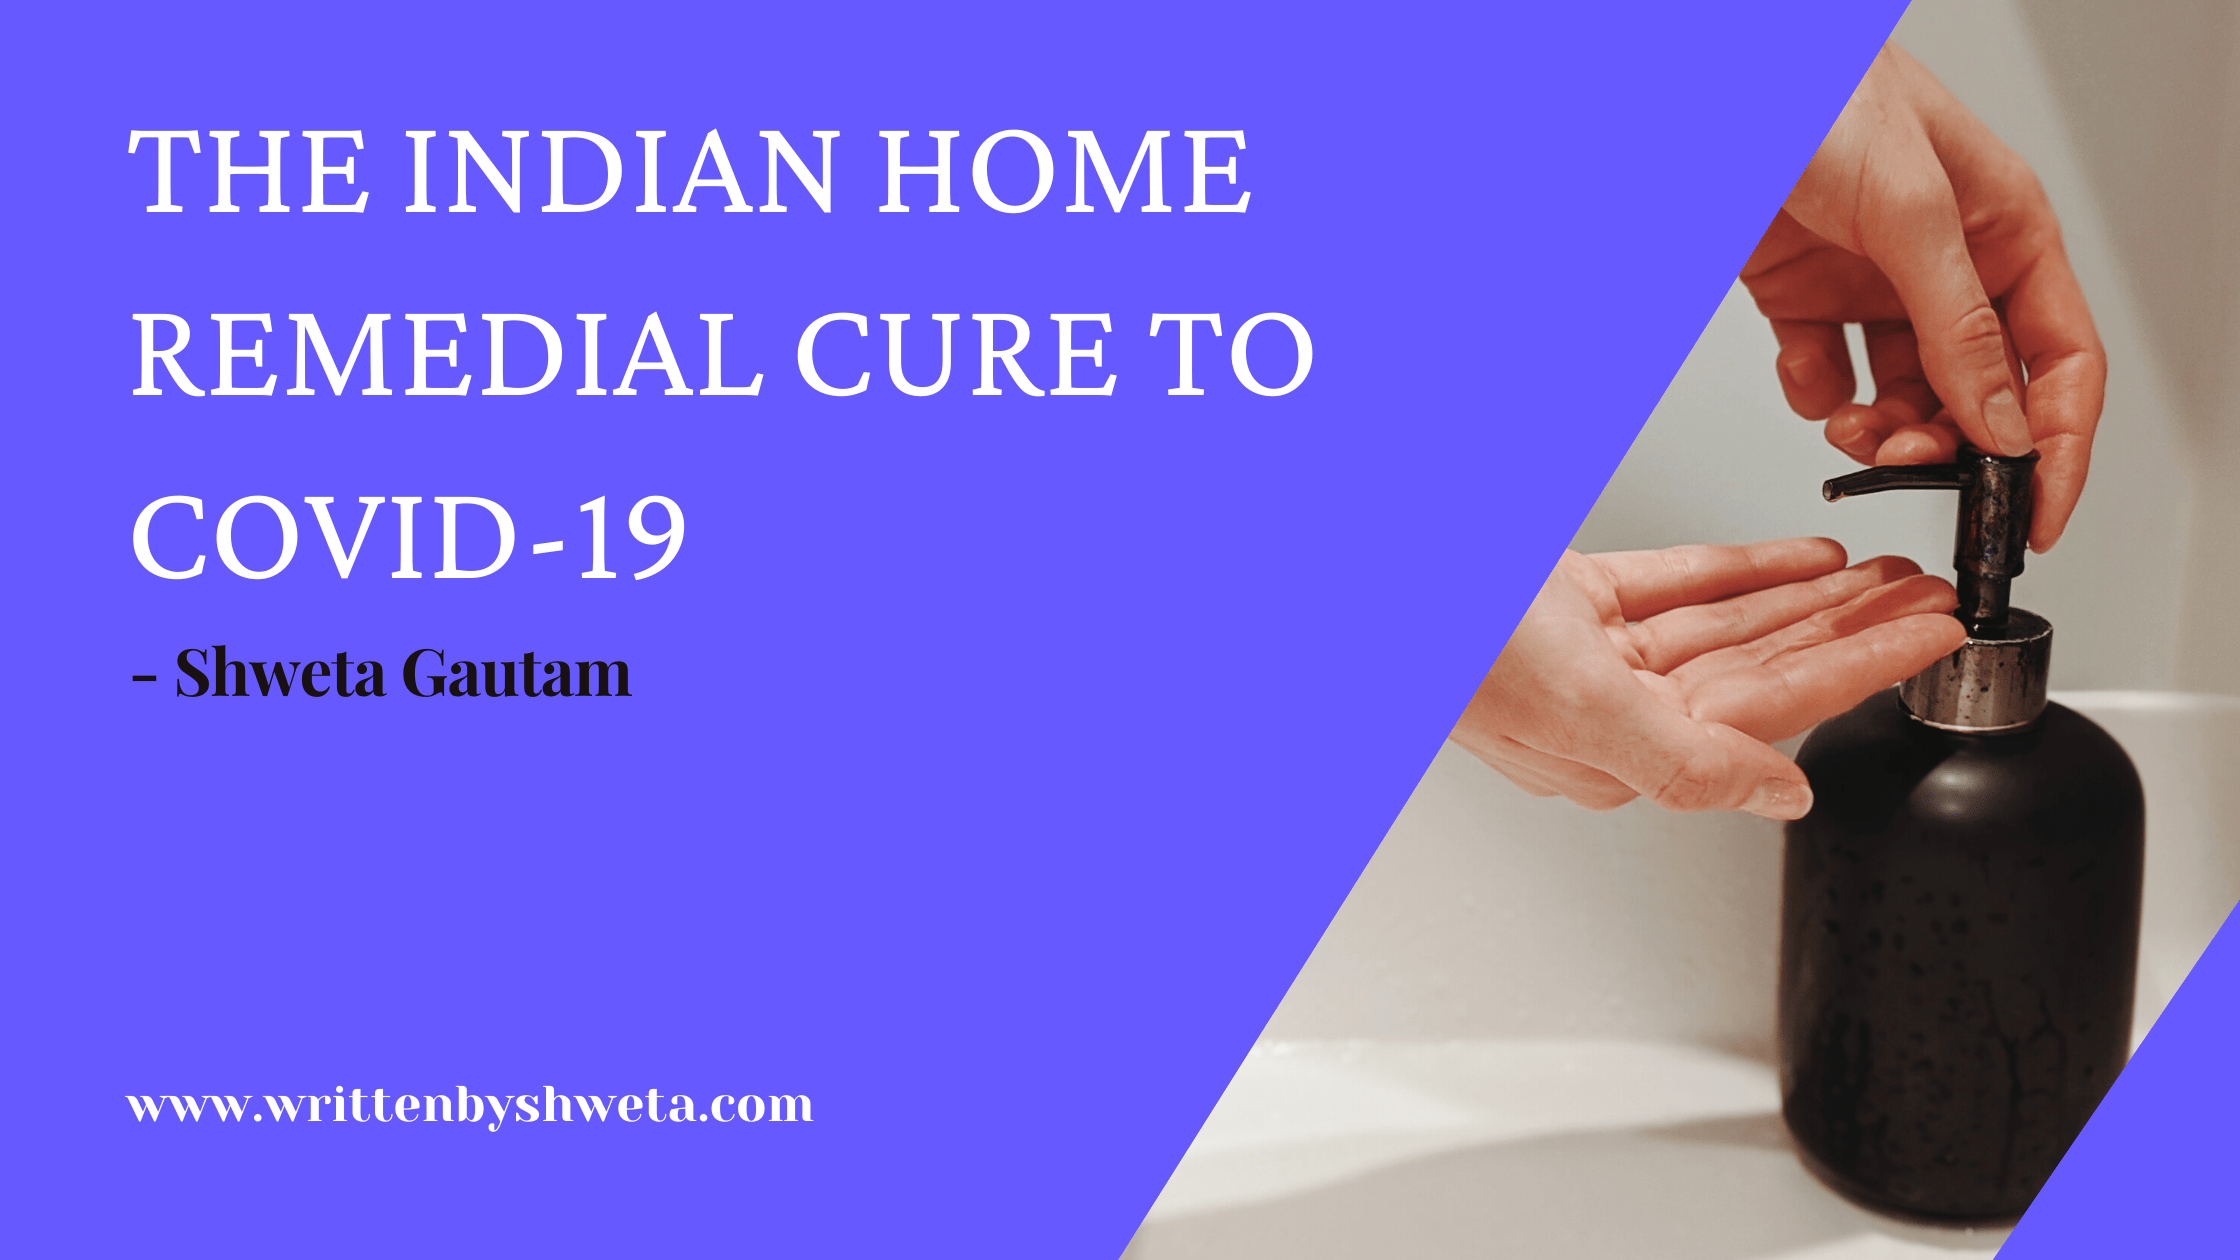 THE INDIAN HOME REMEDIAL CURE TO COVID-19